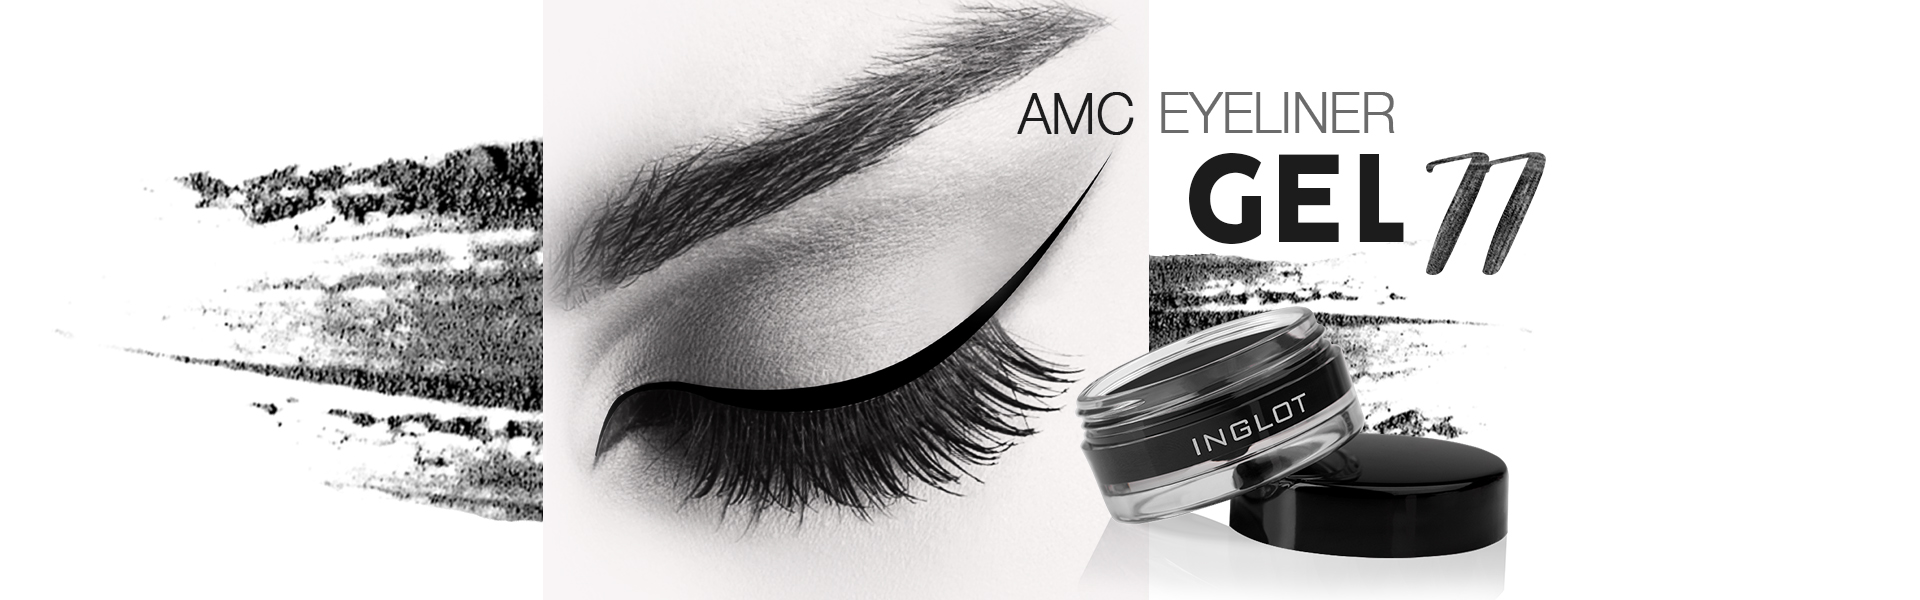 19-05-06-slider---amc-eyeliner-gel-77-en